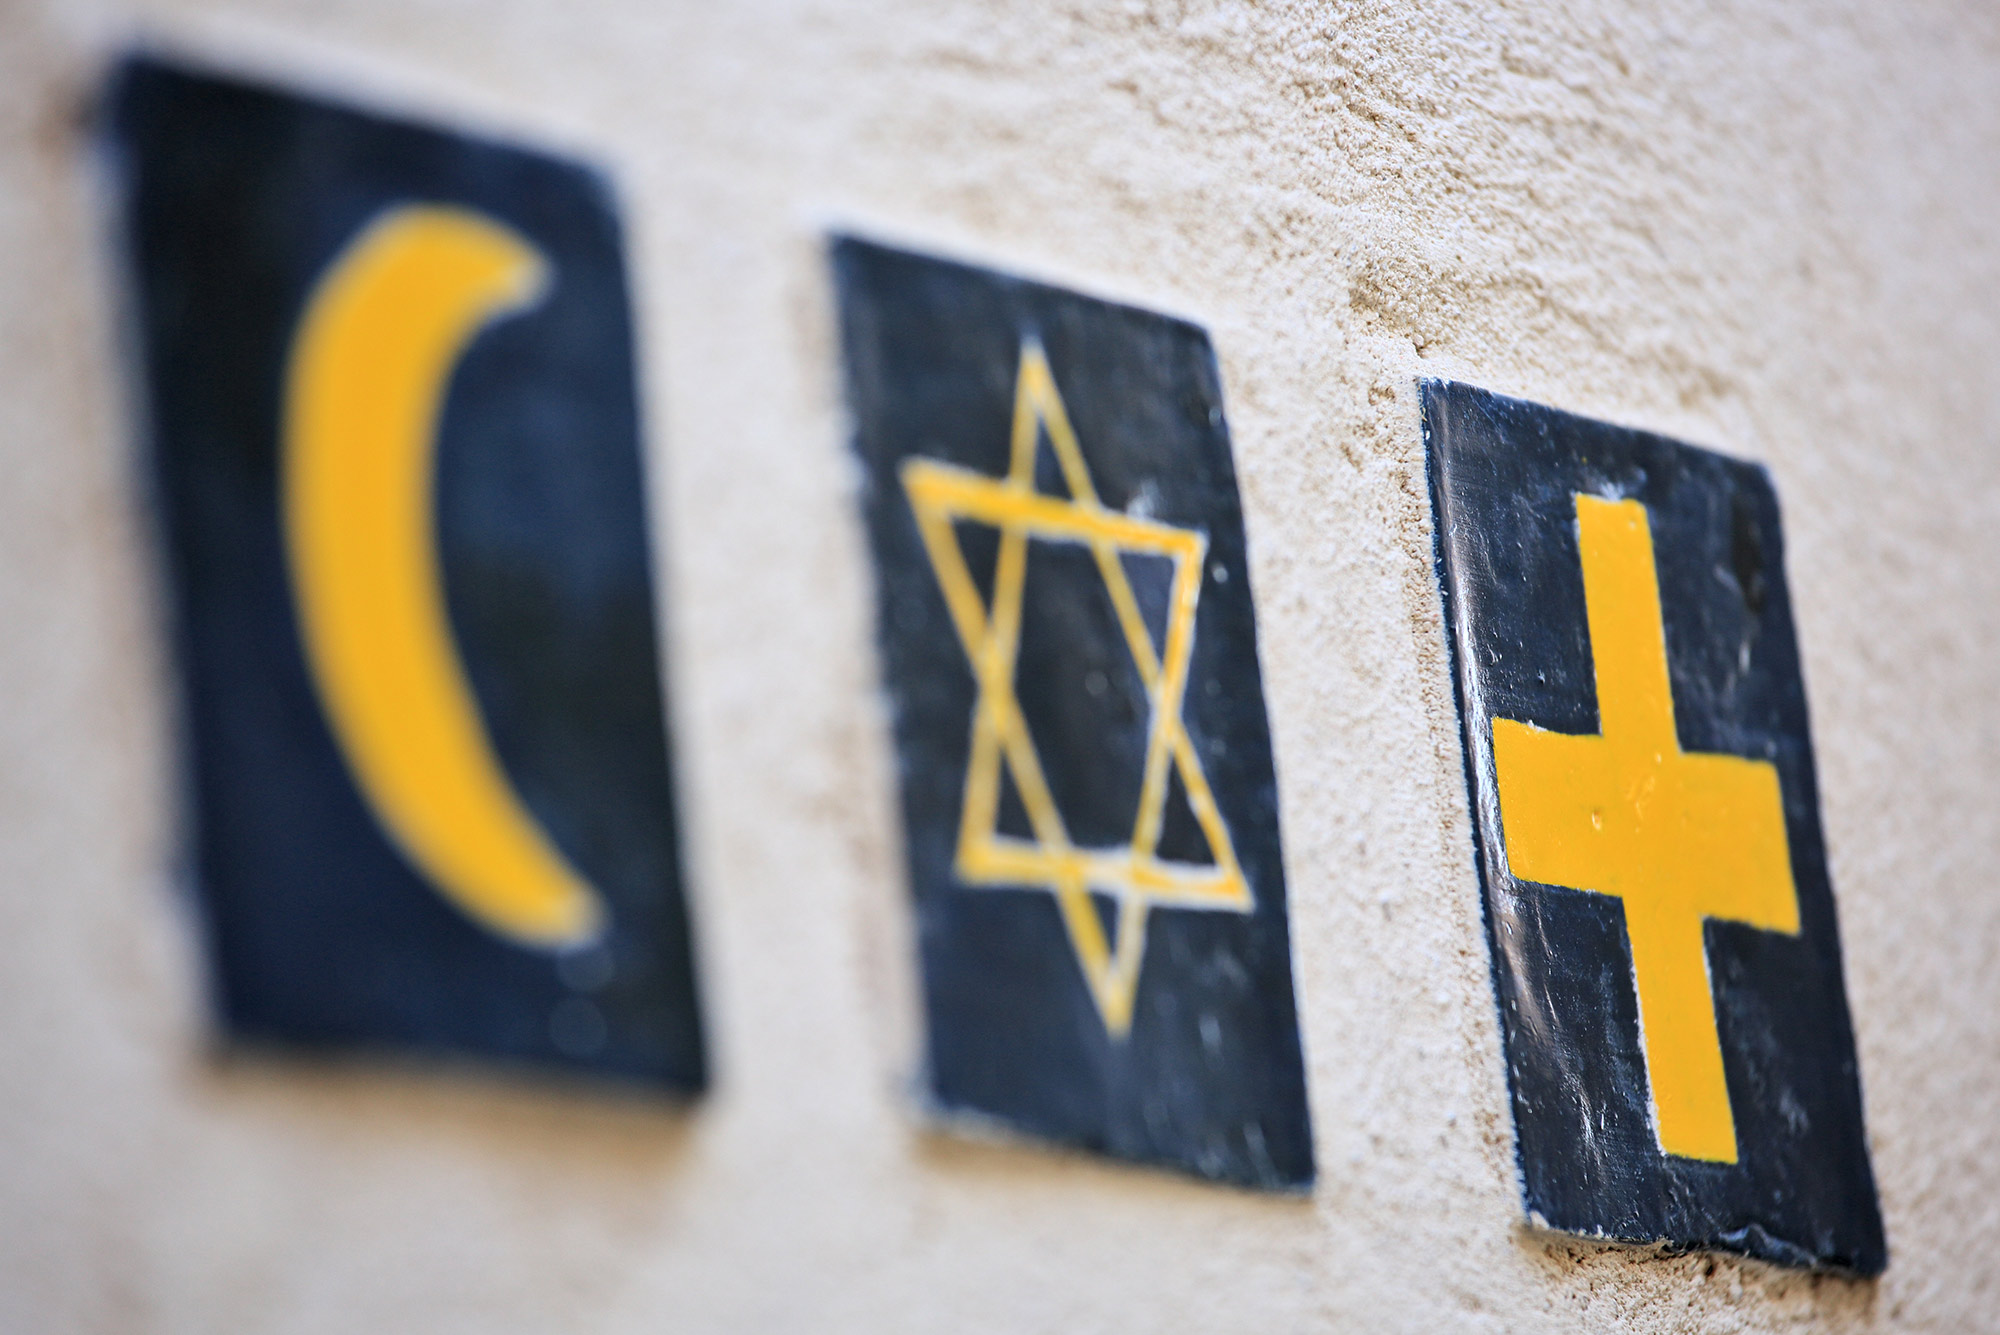 An image of an Islam crescent, Star of David, and Christian cross